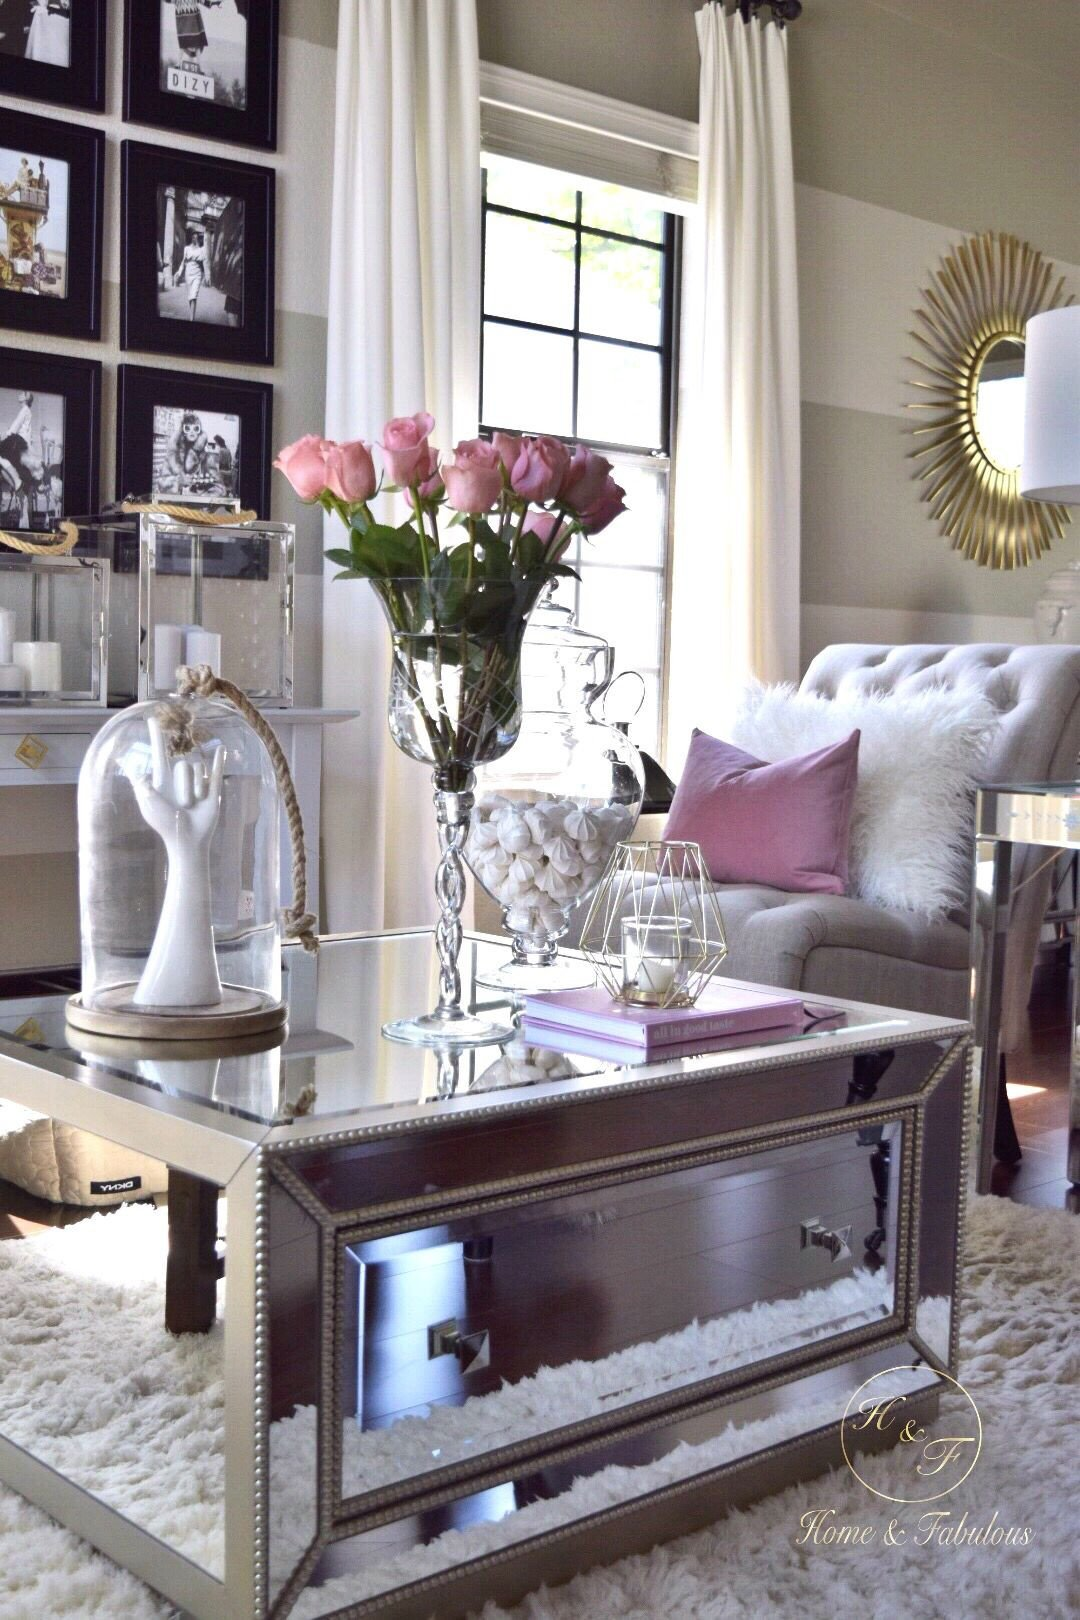 Decor for Living Room Tables Inspirational Home and Fabulous In 2019 Dream Home